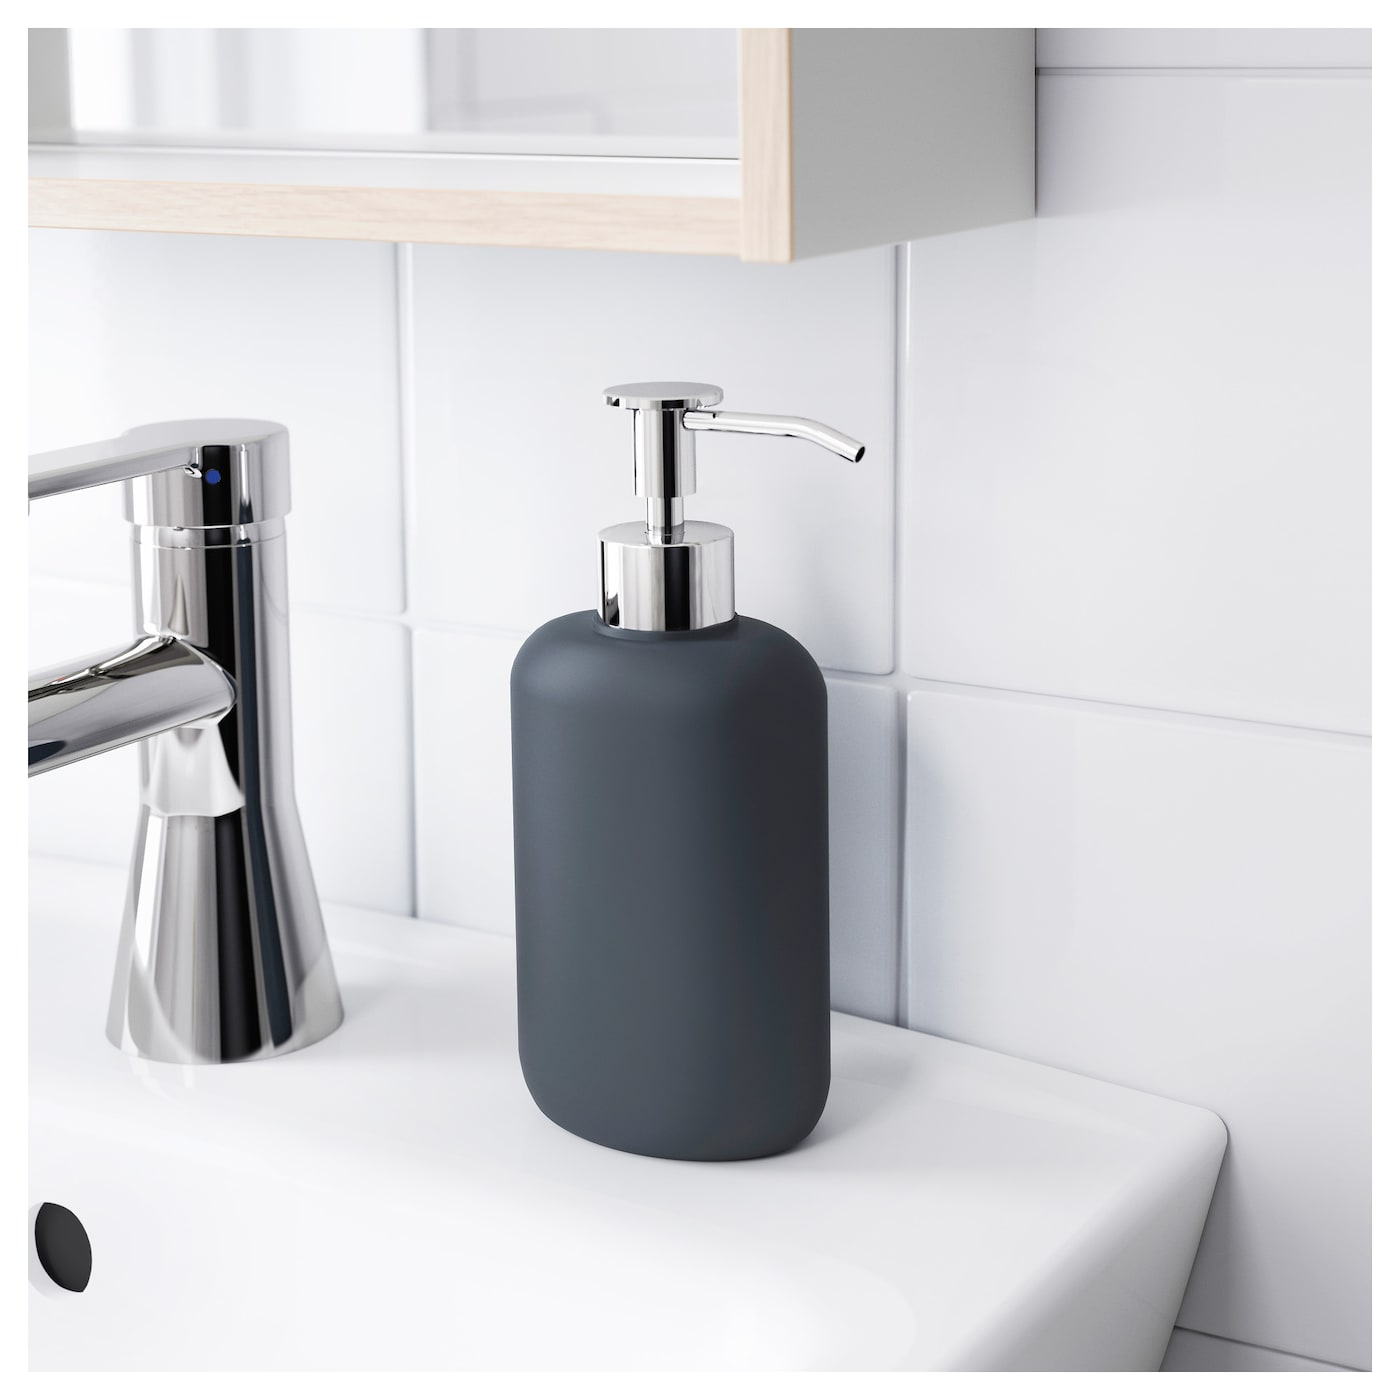 Ekoln soap dispenser dark grey ikea for Dark grey bathroom accessories